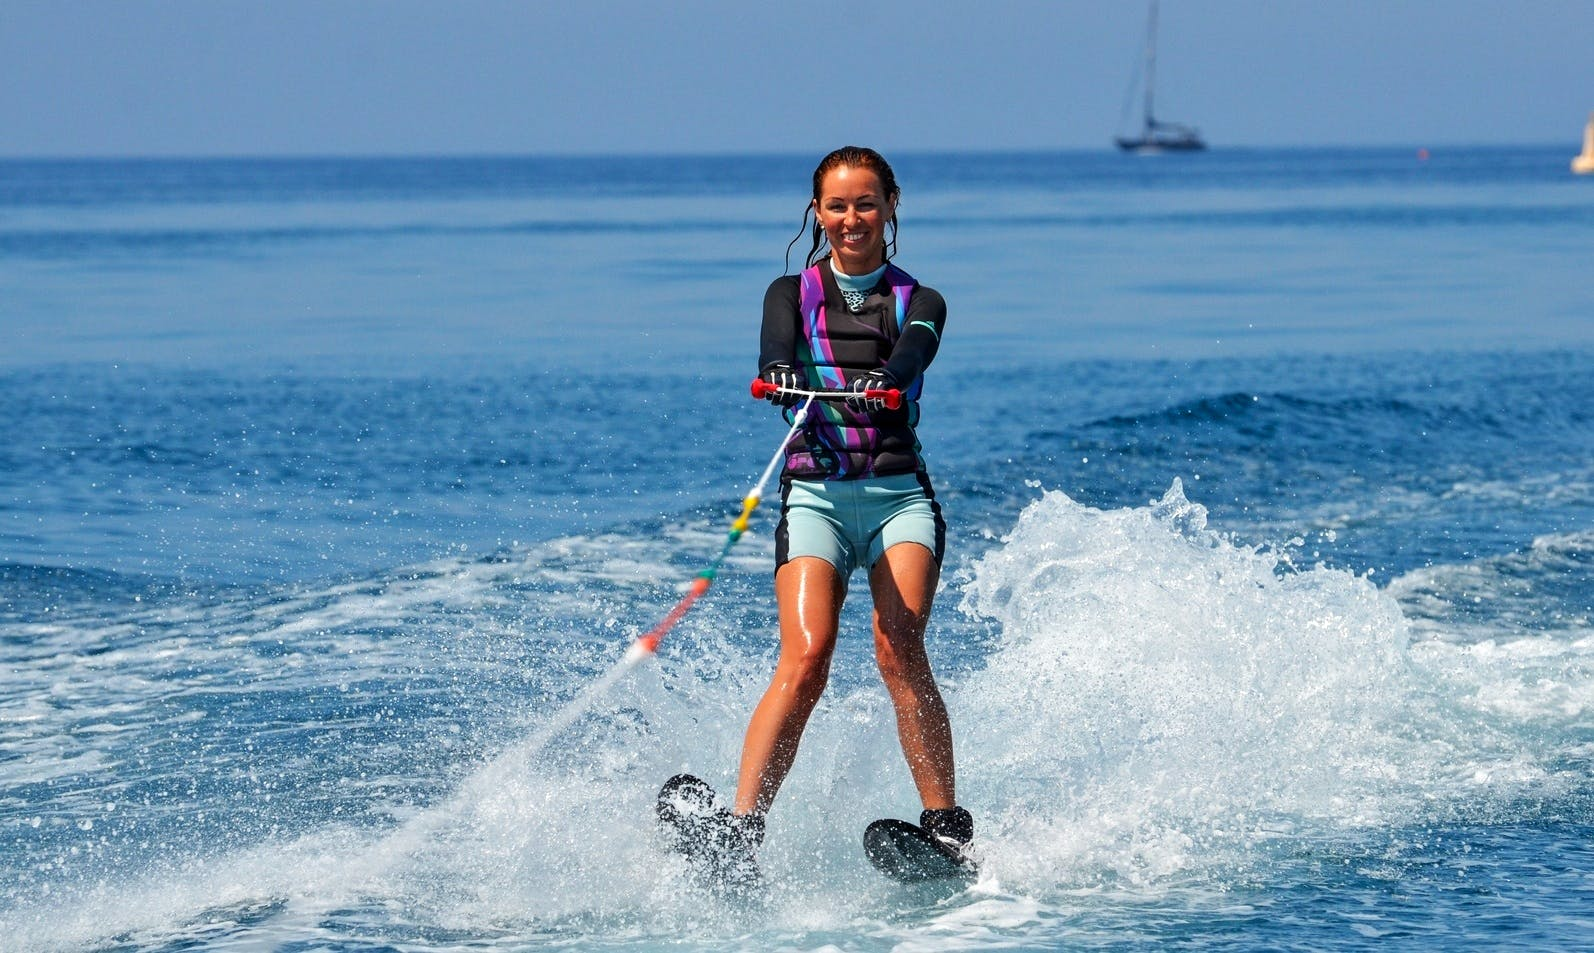 Enjoy Water Skiing in Pissouri Bay, Cyprus